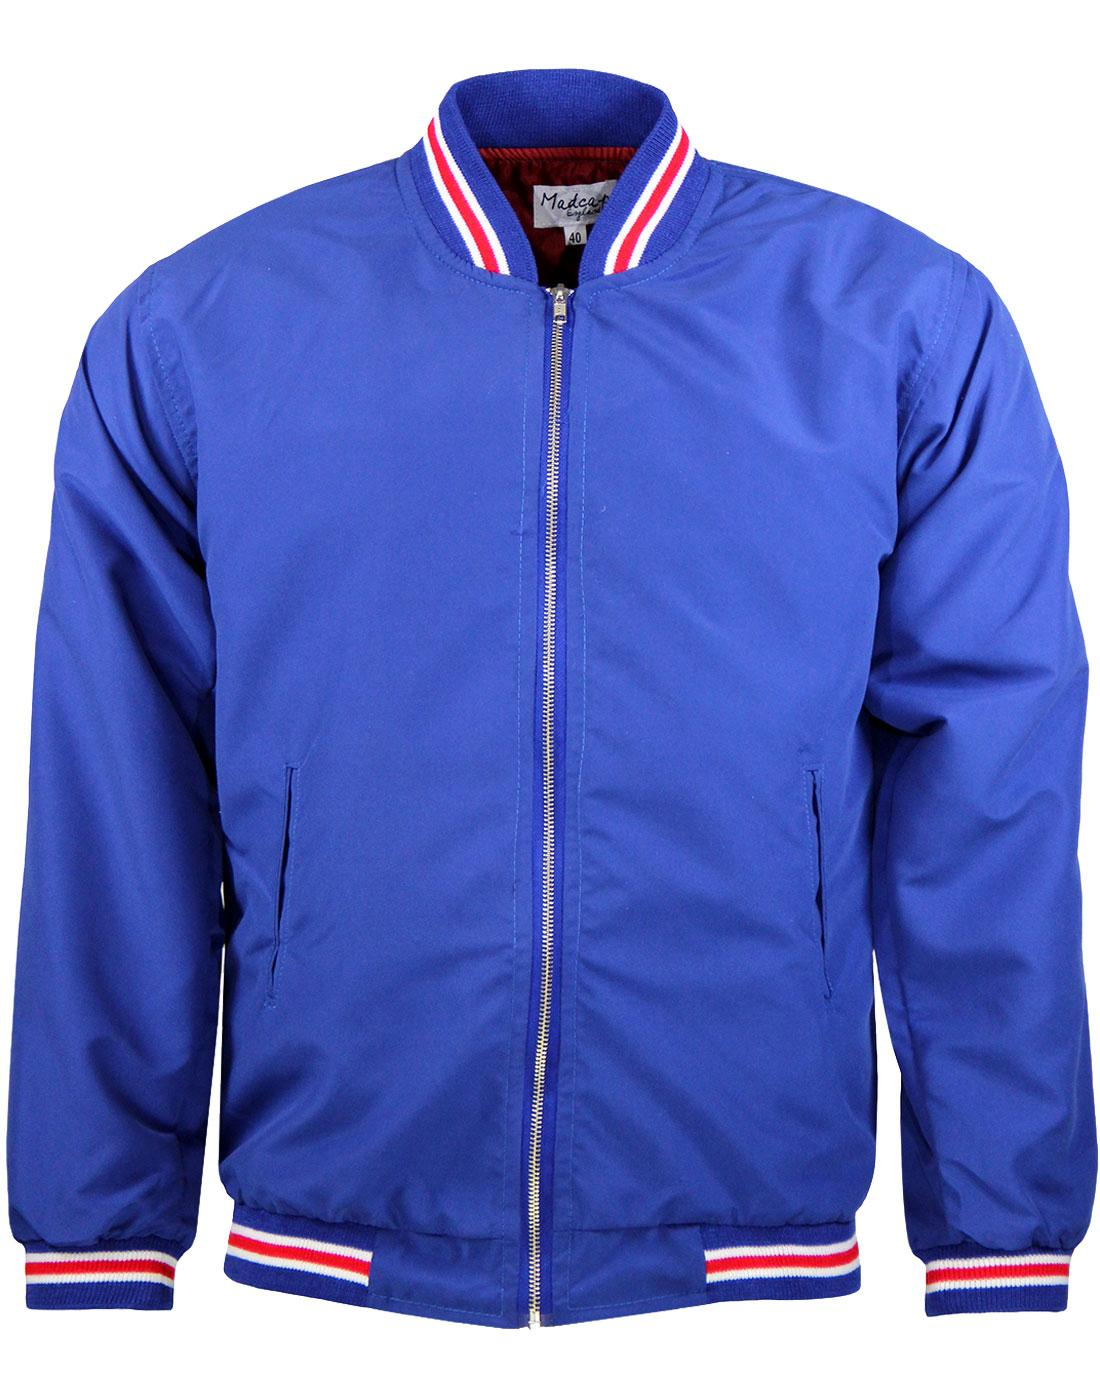 Monkey Jacket MADCAP ENGLND Retro Mod Jacket (RWR)